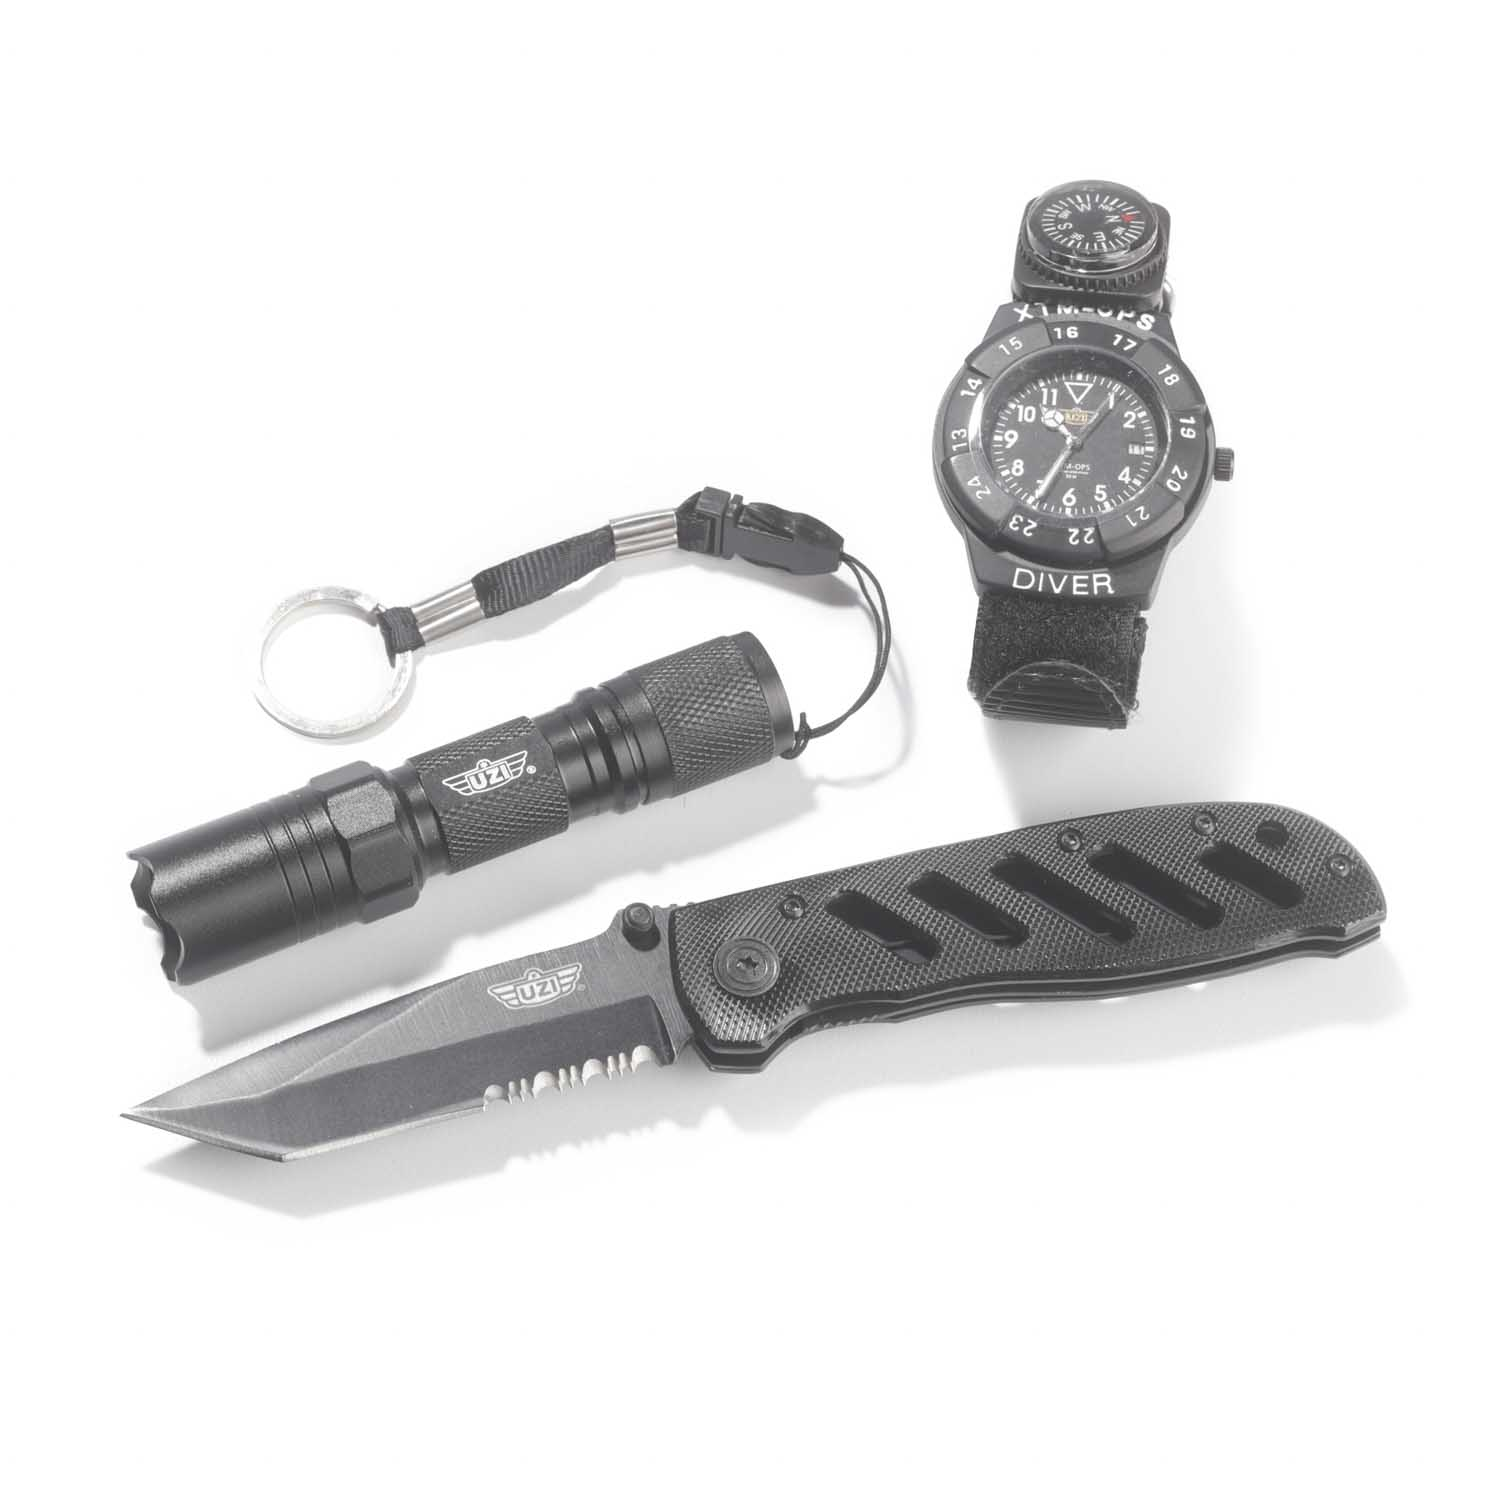 UZI Special Forces Watch, Knife and LED Flashlight Combo